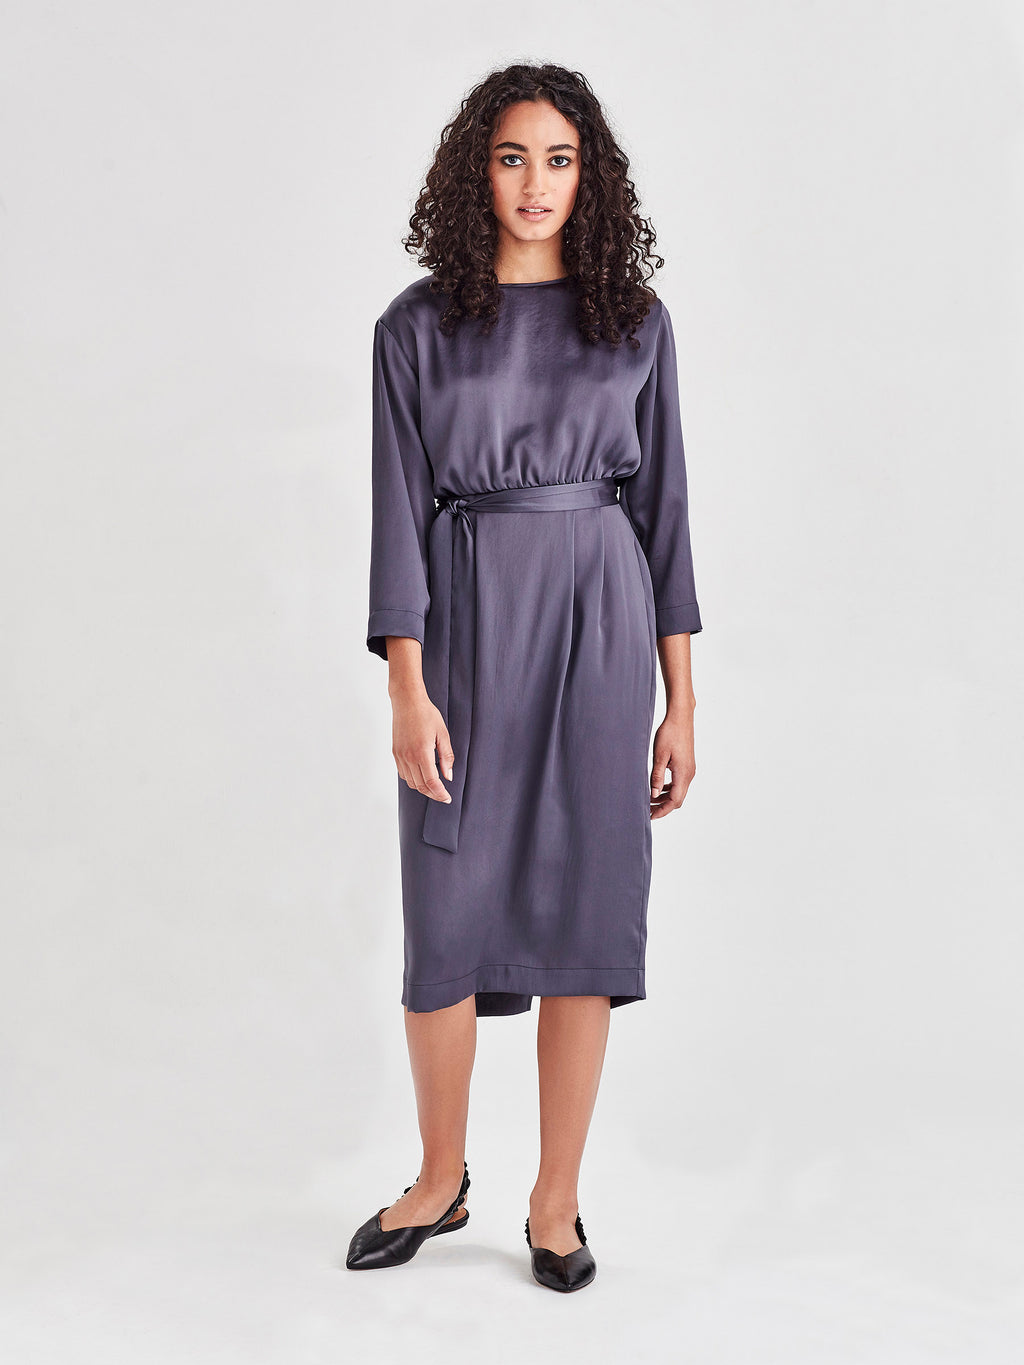 Valencia Dress (Satin Triacetate) Smoke